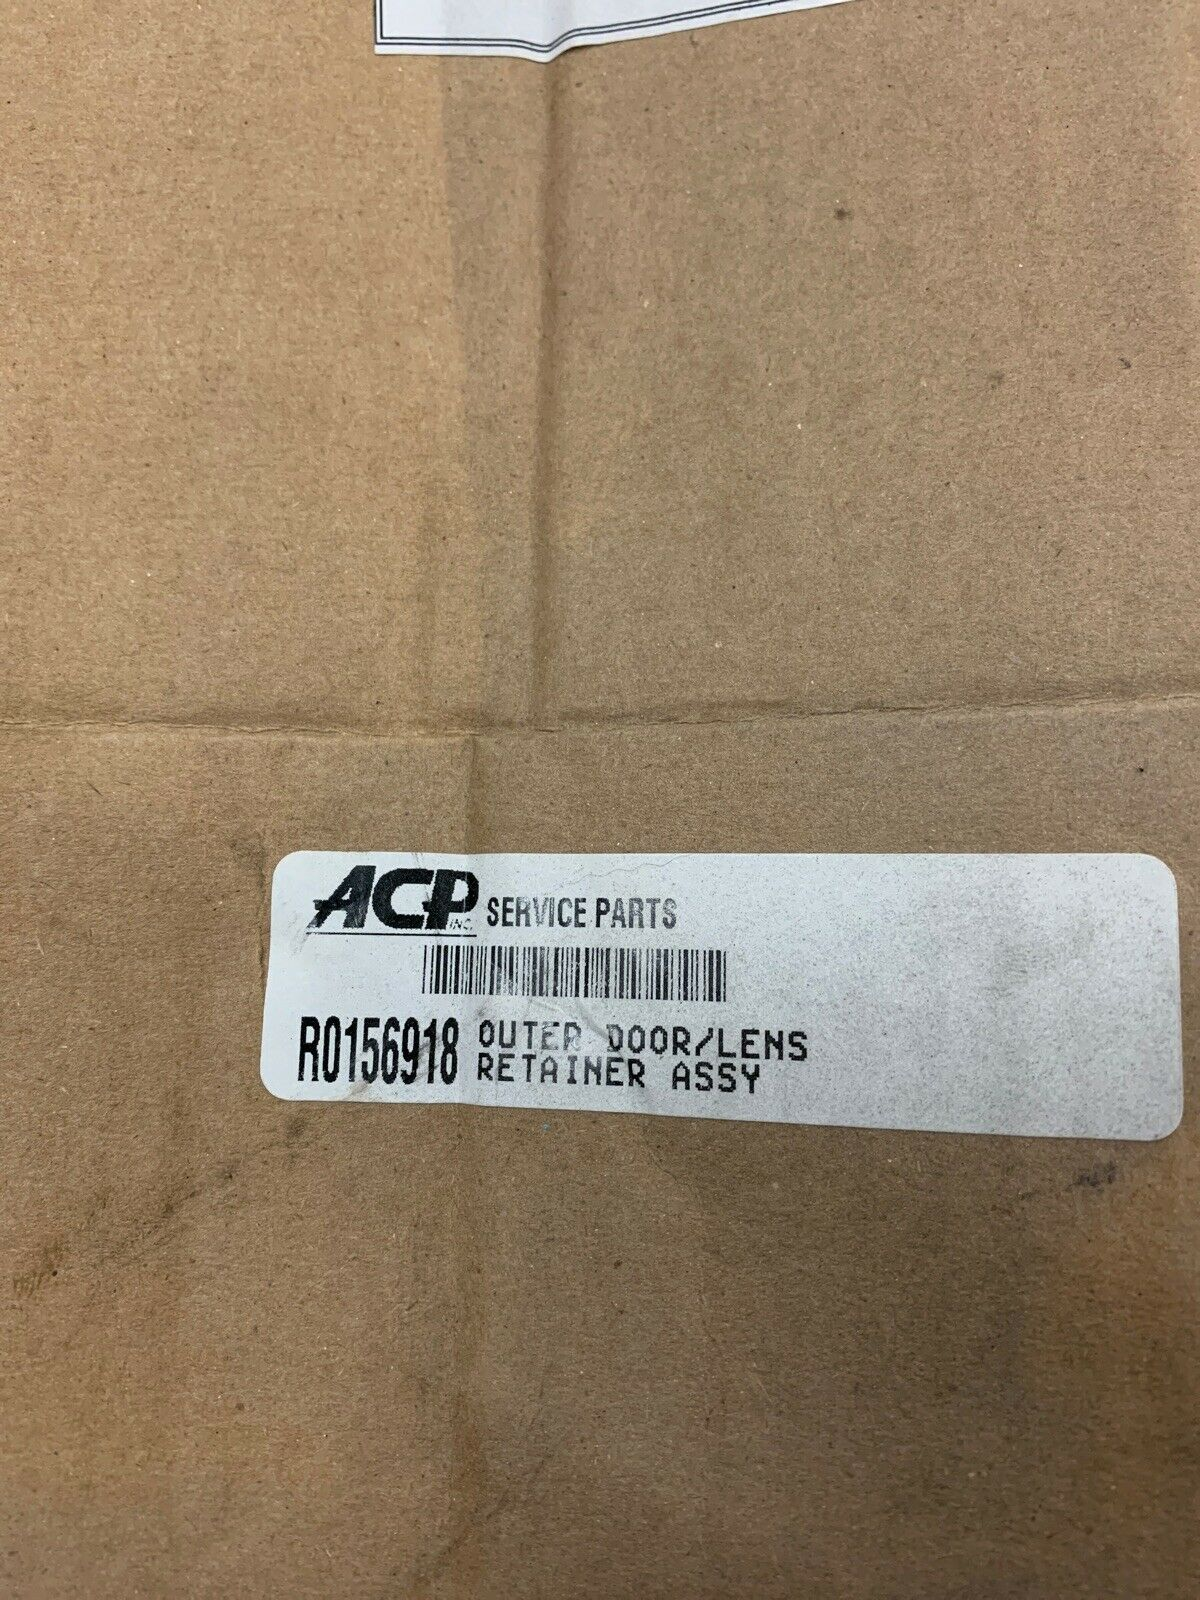 AMANA R0156918 Outer Door//Lens Retainer Assembly